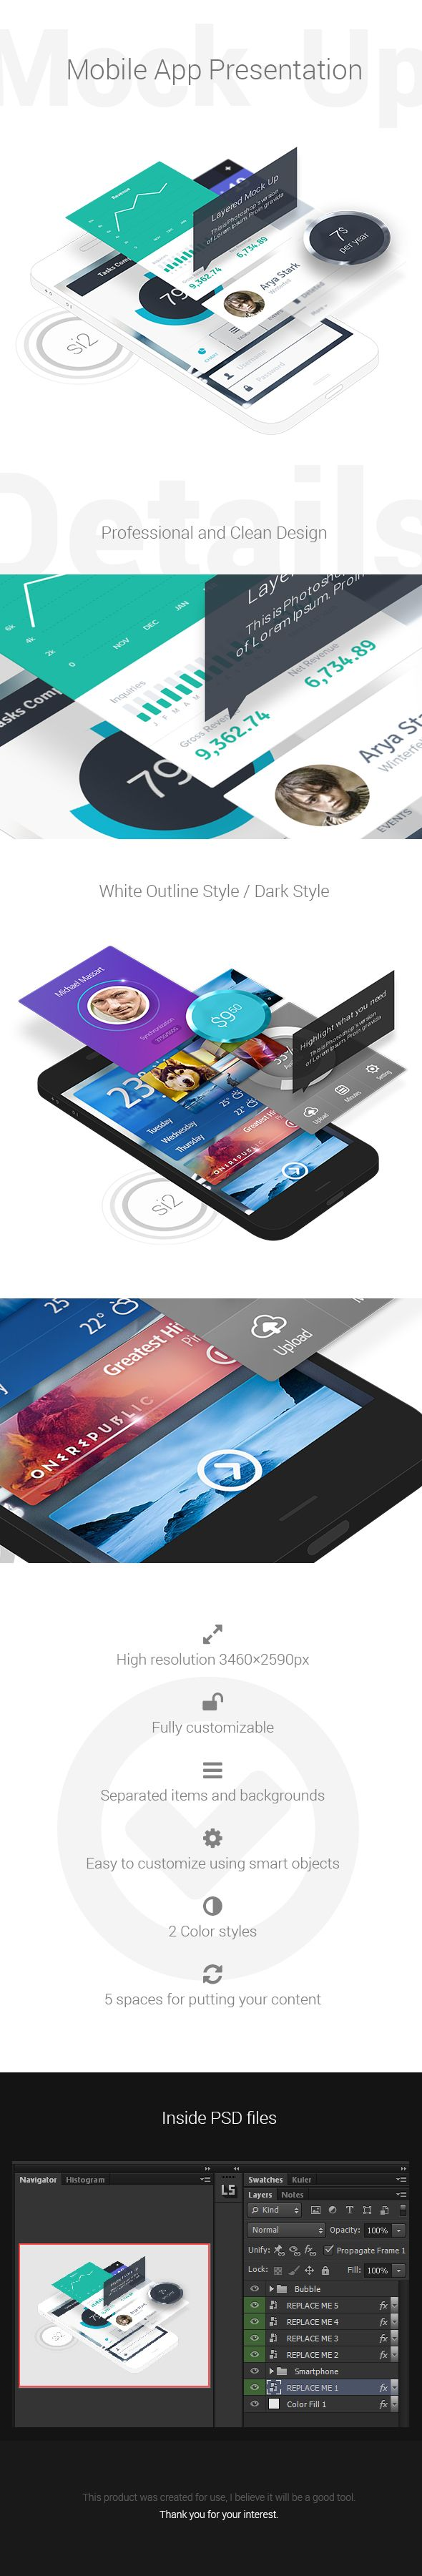 Mobile App Presentation Mock by GoaShape on Behance